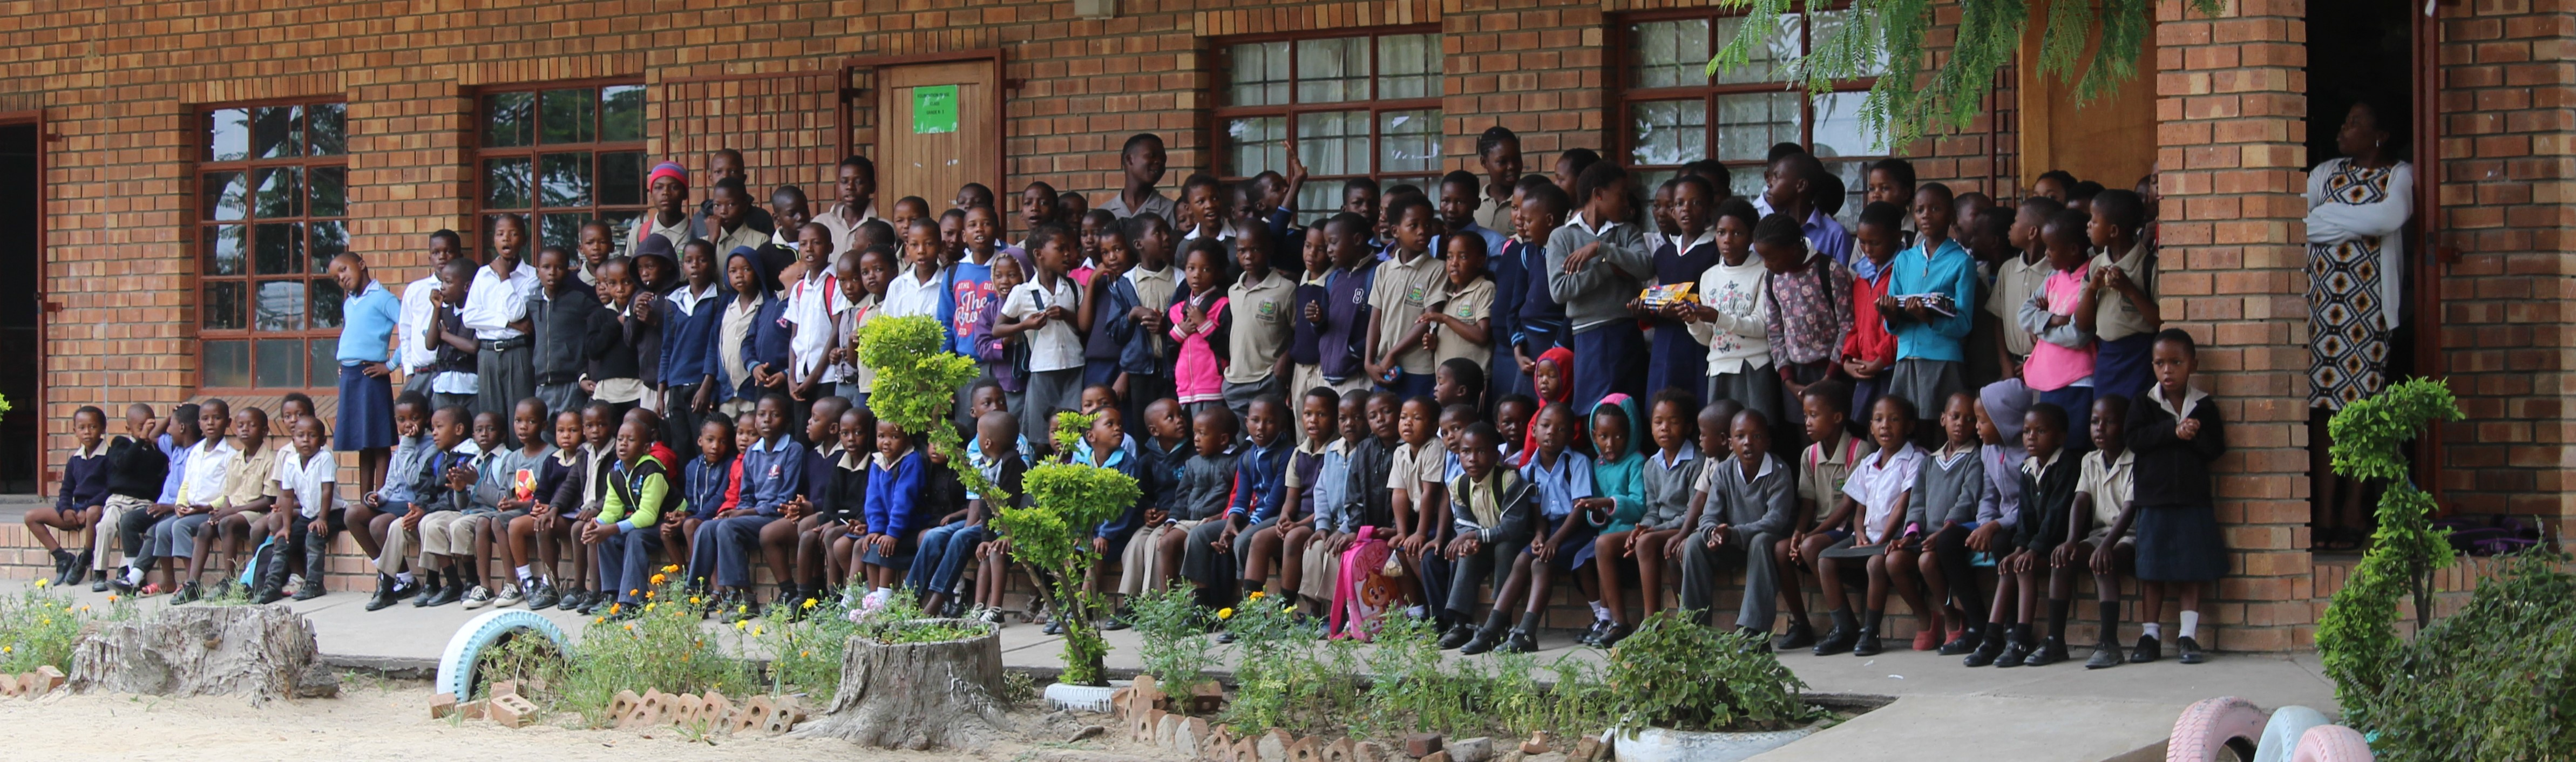 TWT Ride 2018 DAY 4 - Boschdraai Primary School who received gifts of pens and pencils from riders.jpg